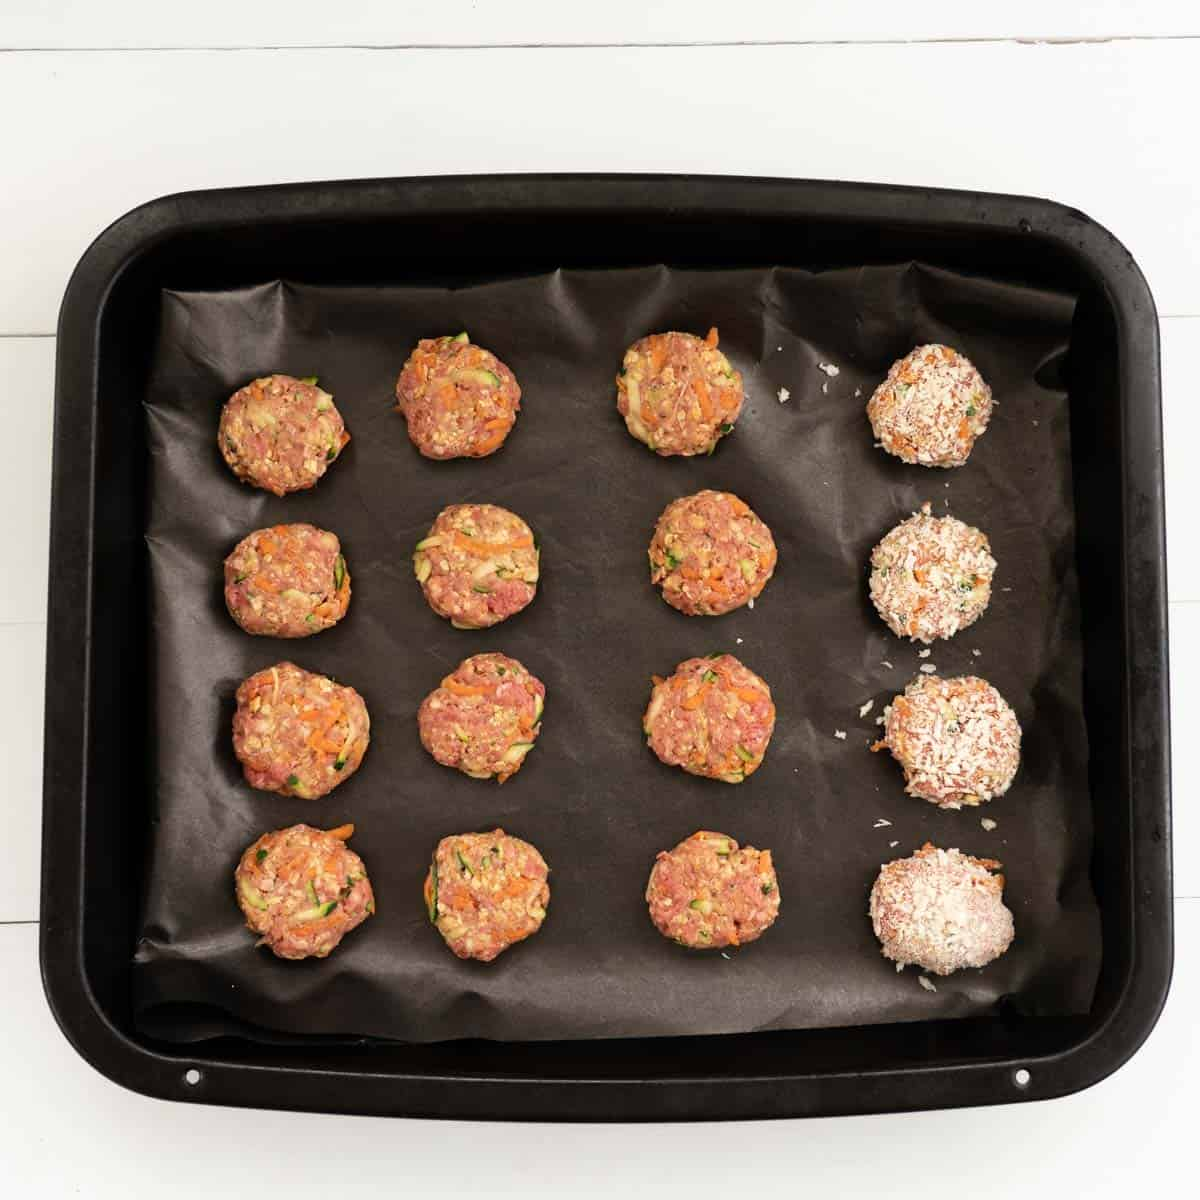 Tray of rissoles ready to go into the oven, 12 are plain and 4 are crumbed